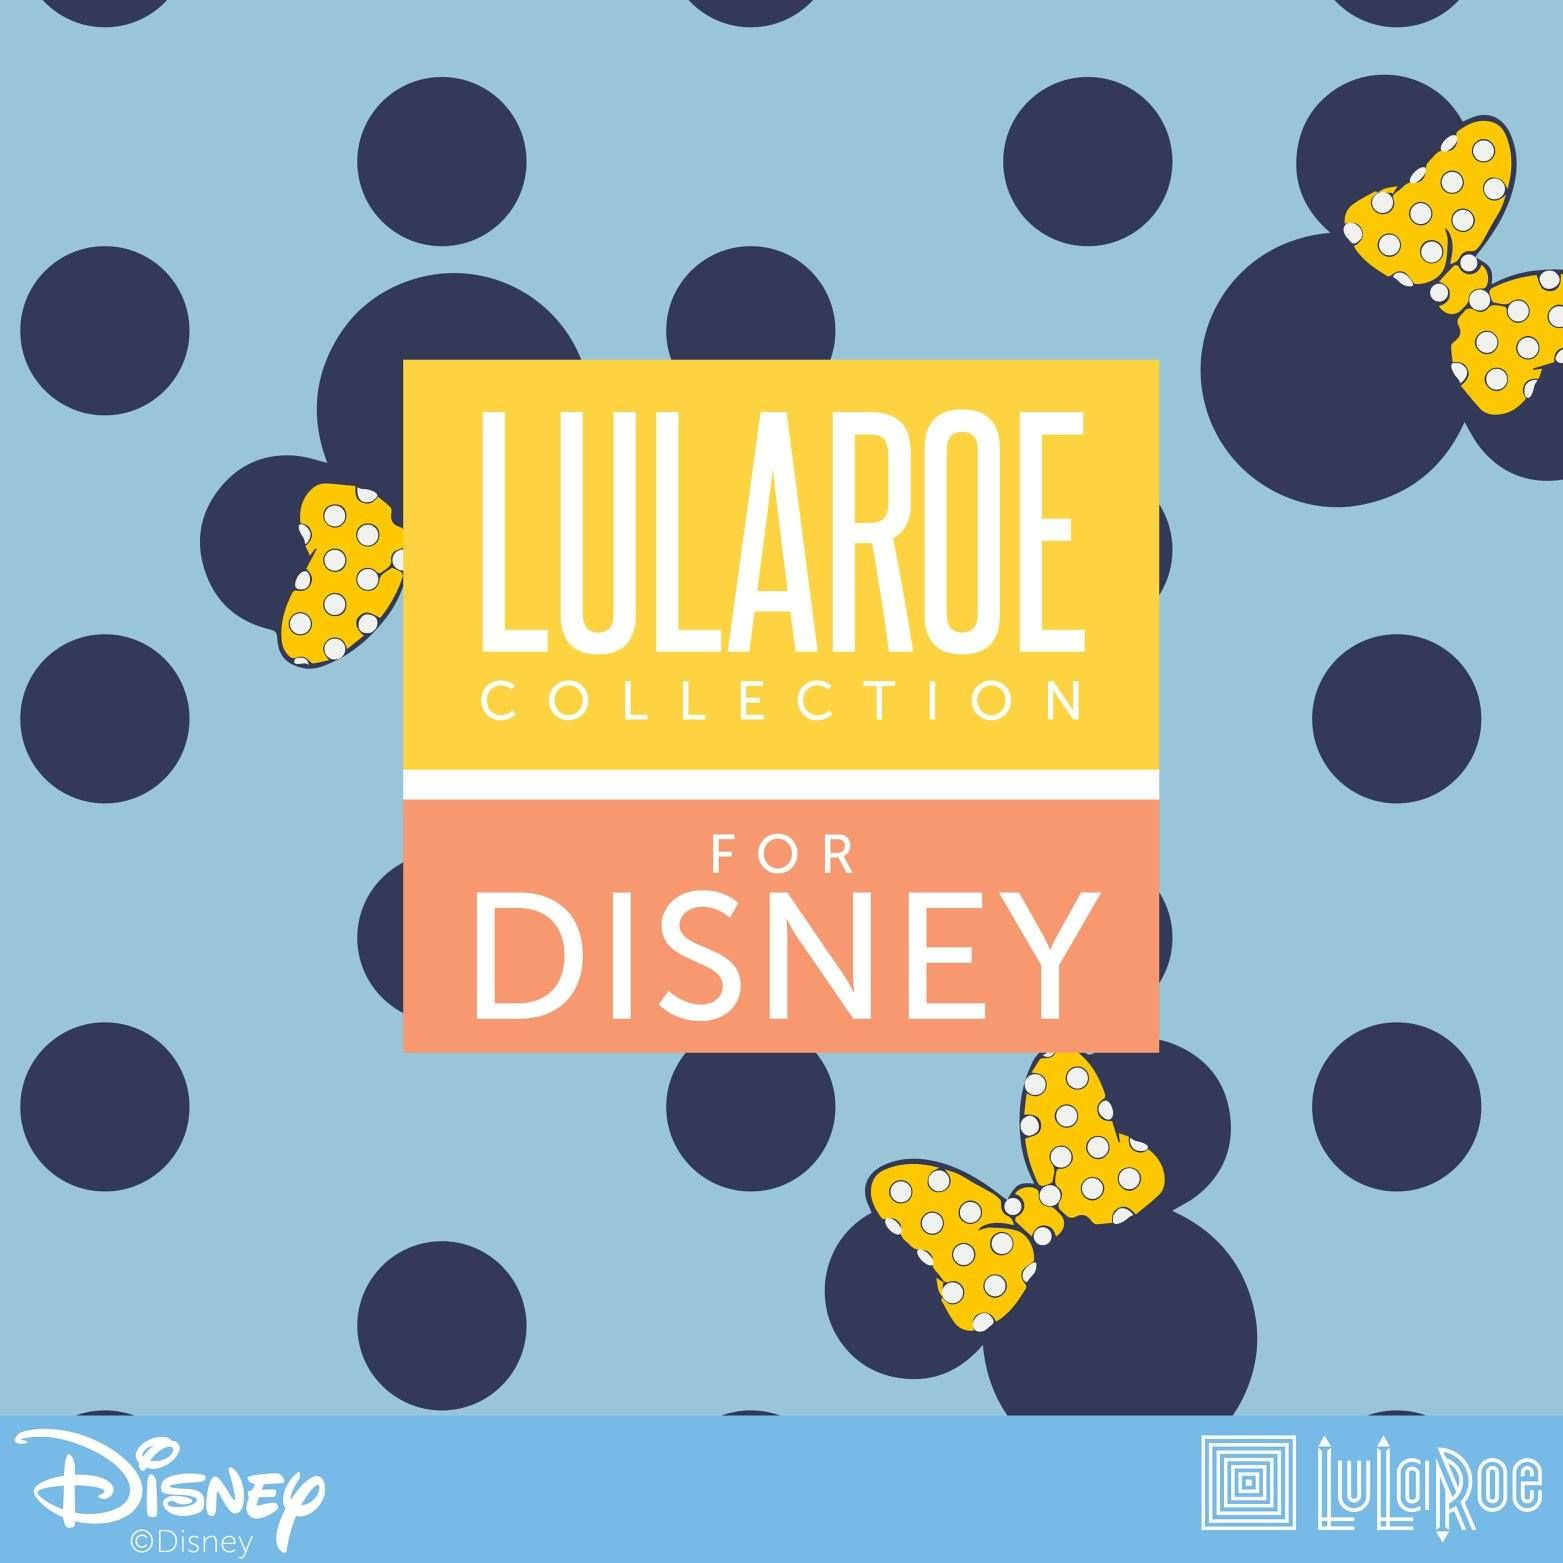 d82bc9e67bddeb LuLaRoe Collection For Disney is here and make sure to check out all the  magical pieces I carry!!! YAY!!!